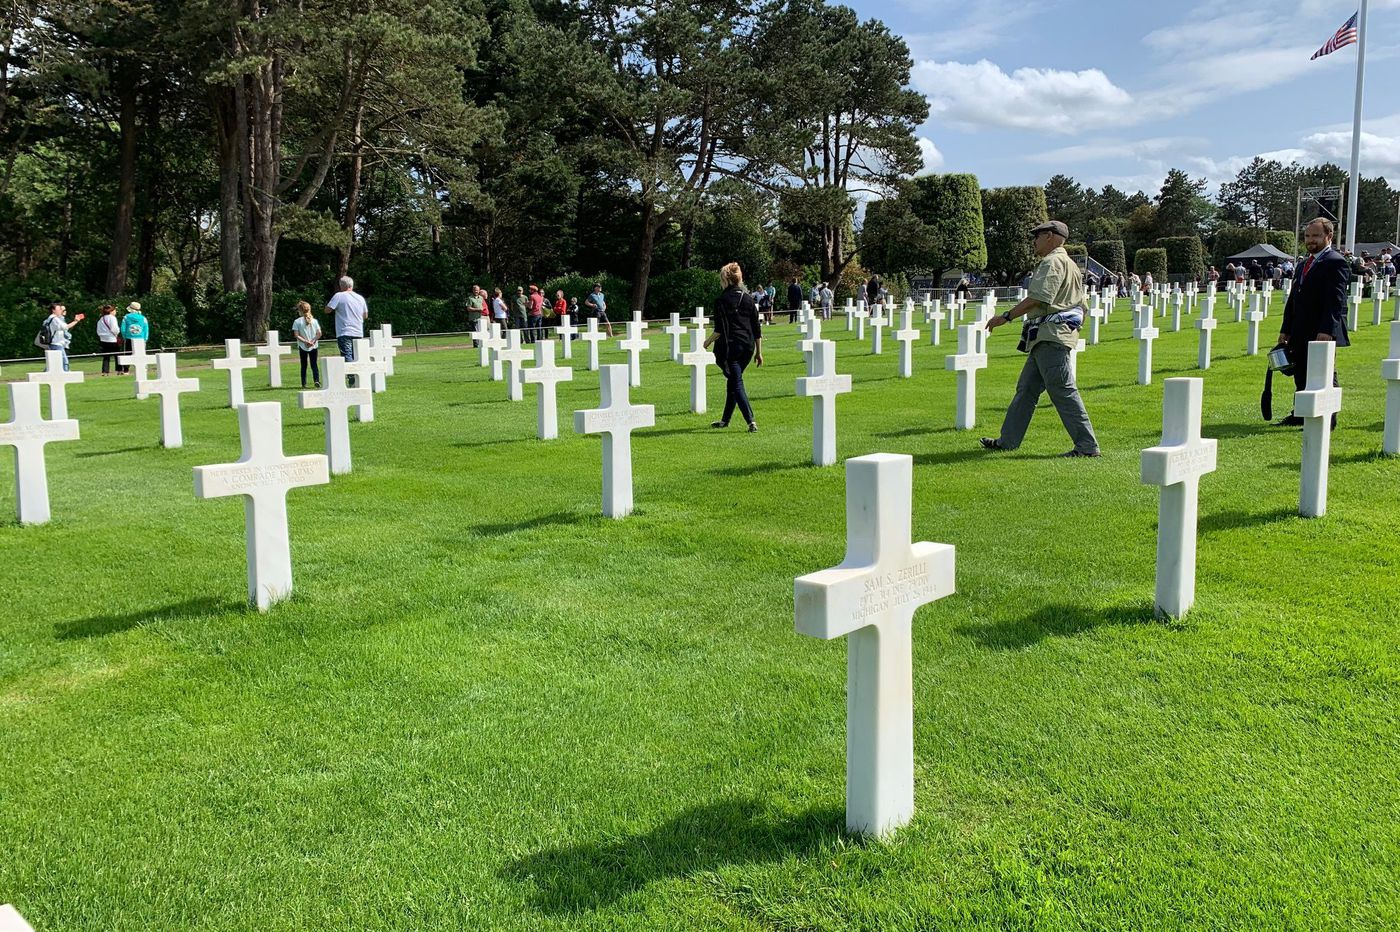 75th anniversary of D-day: A visit to the Normandy cemetery reminds us of the values thousands died for   Trudy Rubin